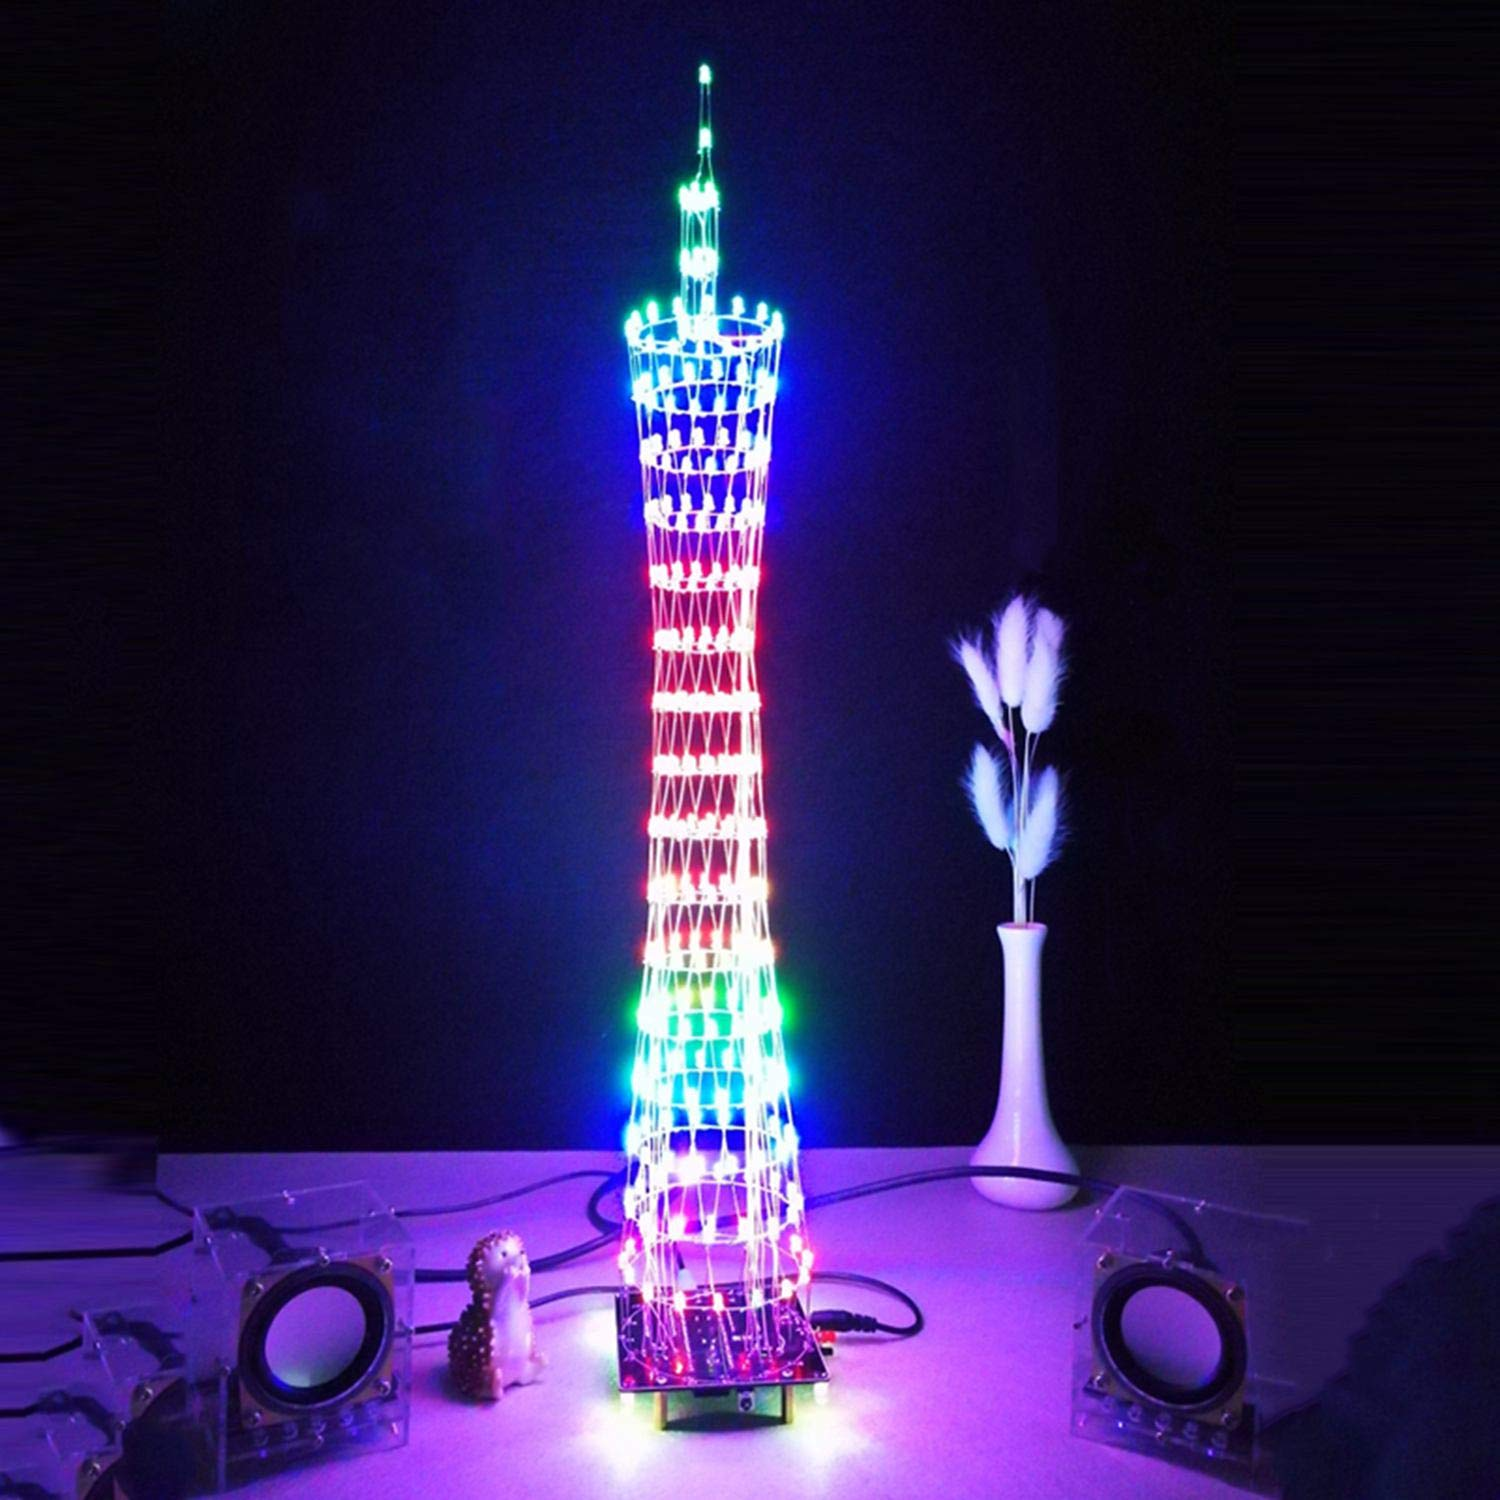 SODIAL DIY LED LightCanton Tower Suite Wireless Remote Control Electronic Kit Music Spectrum Soldering Kits DIY Brain-training Toy